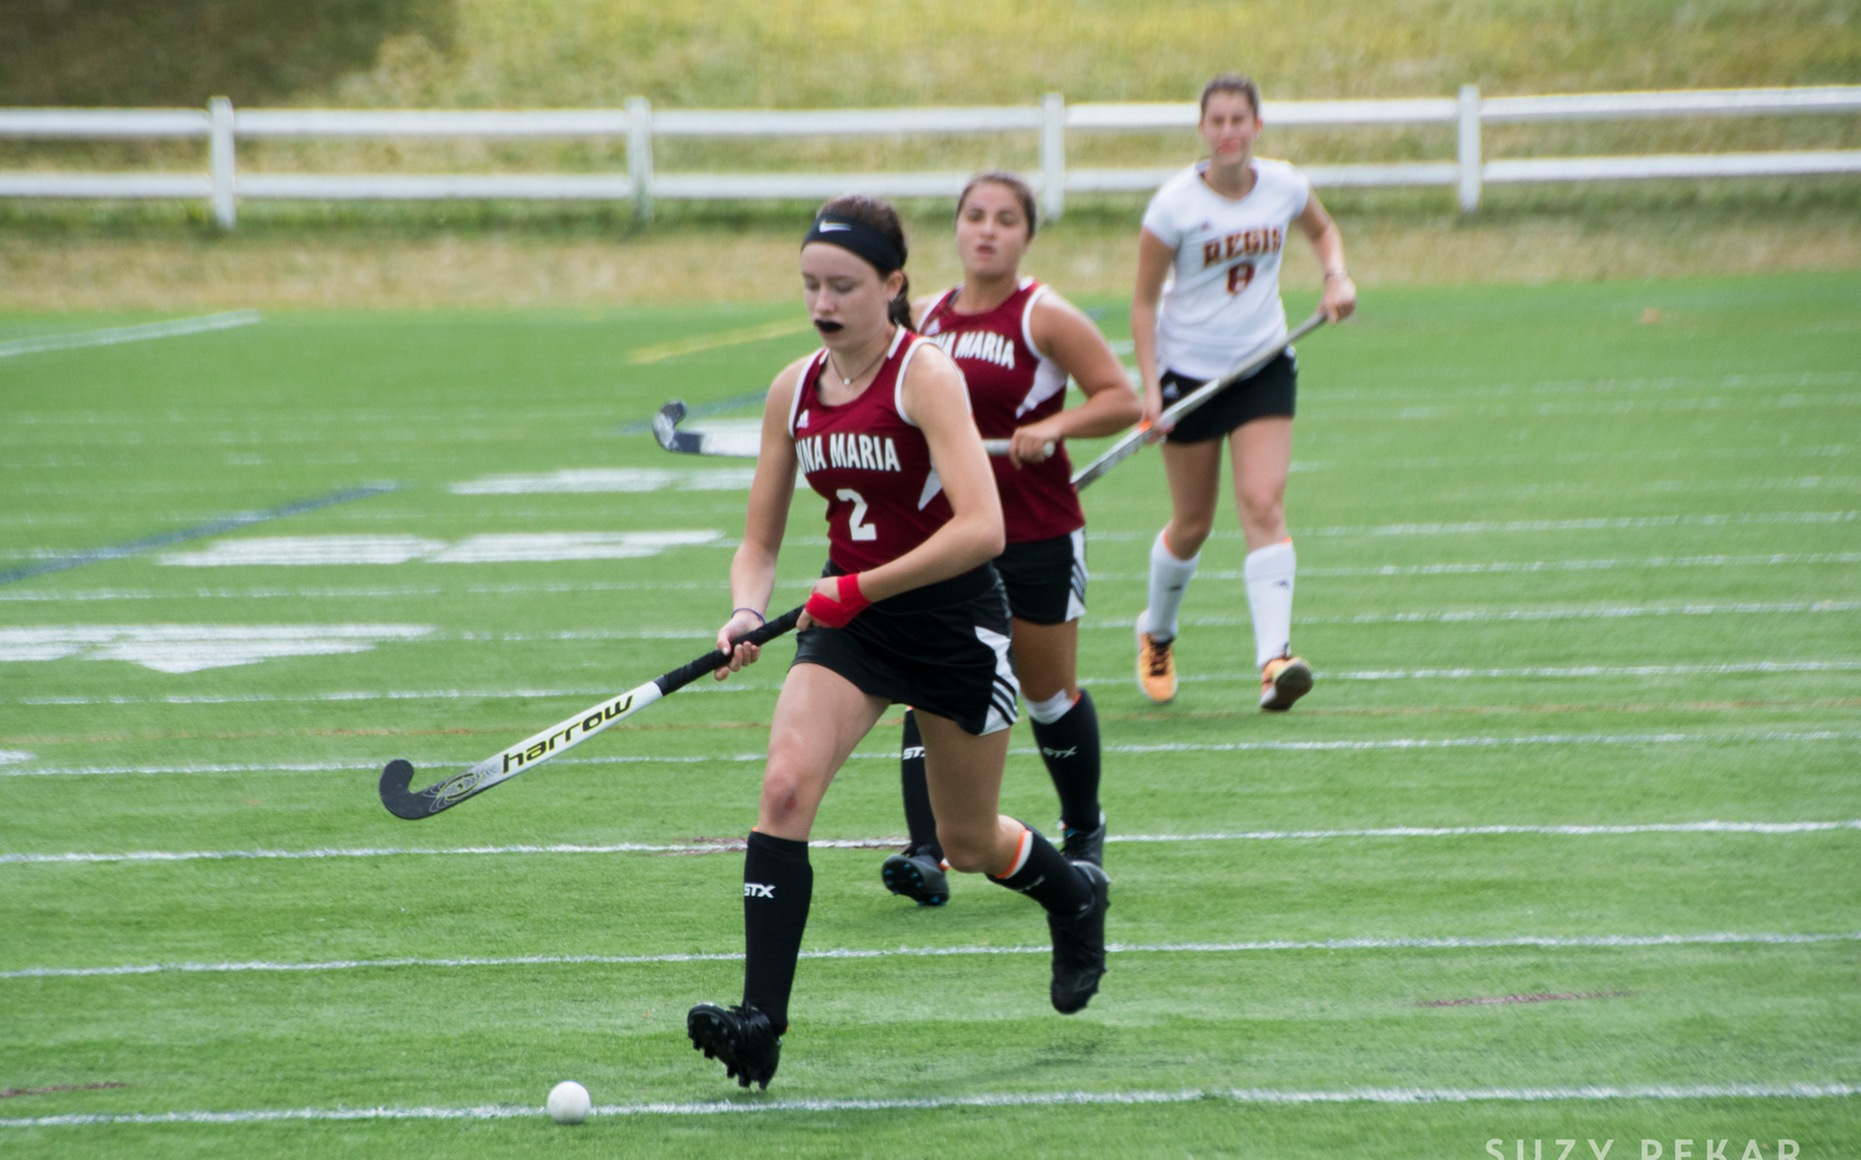 FIELD HOCKEY: Anna Maria shuts down Bay Path